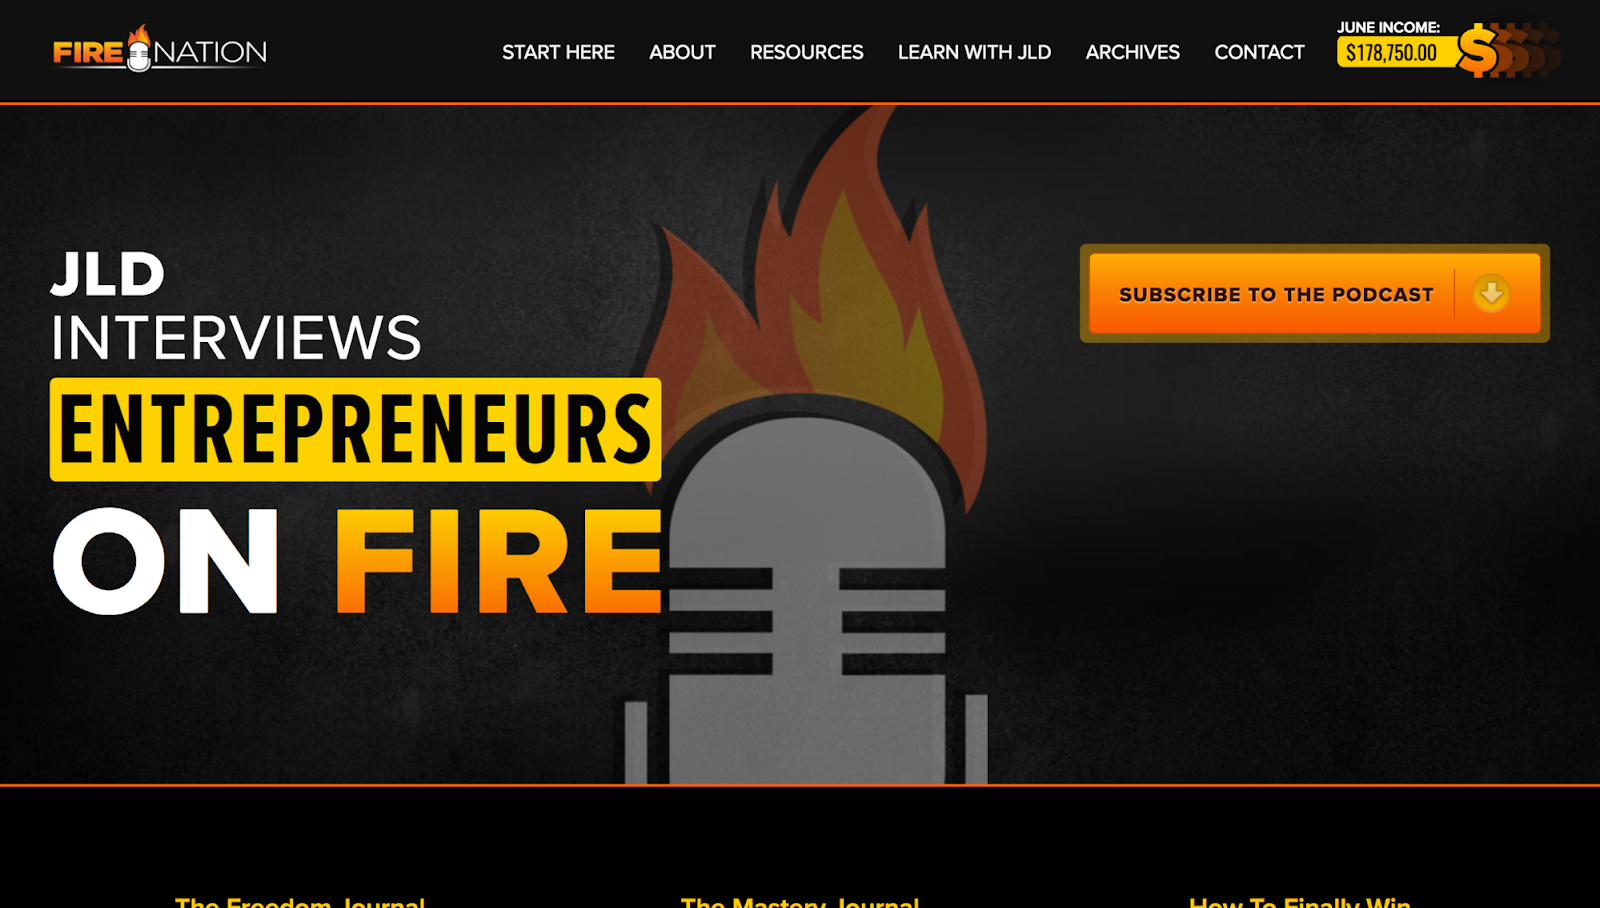 Screenshot showing a podcast